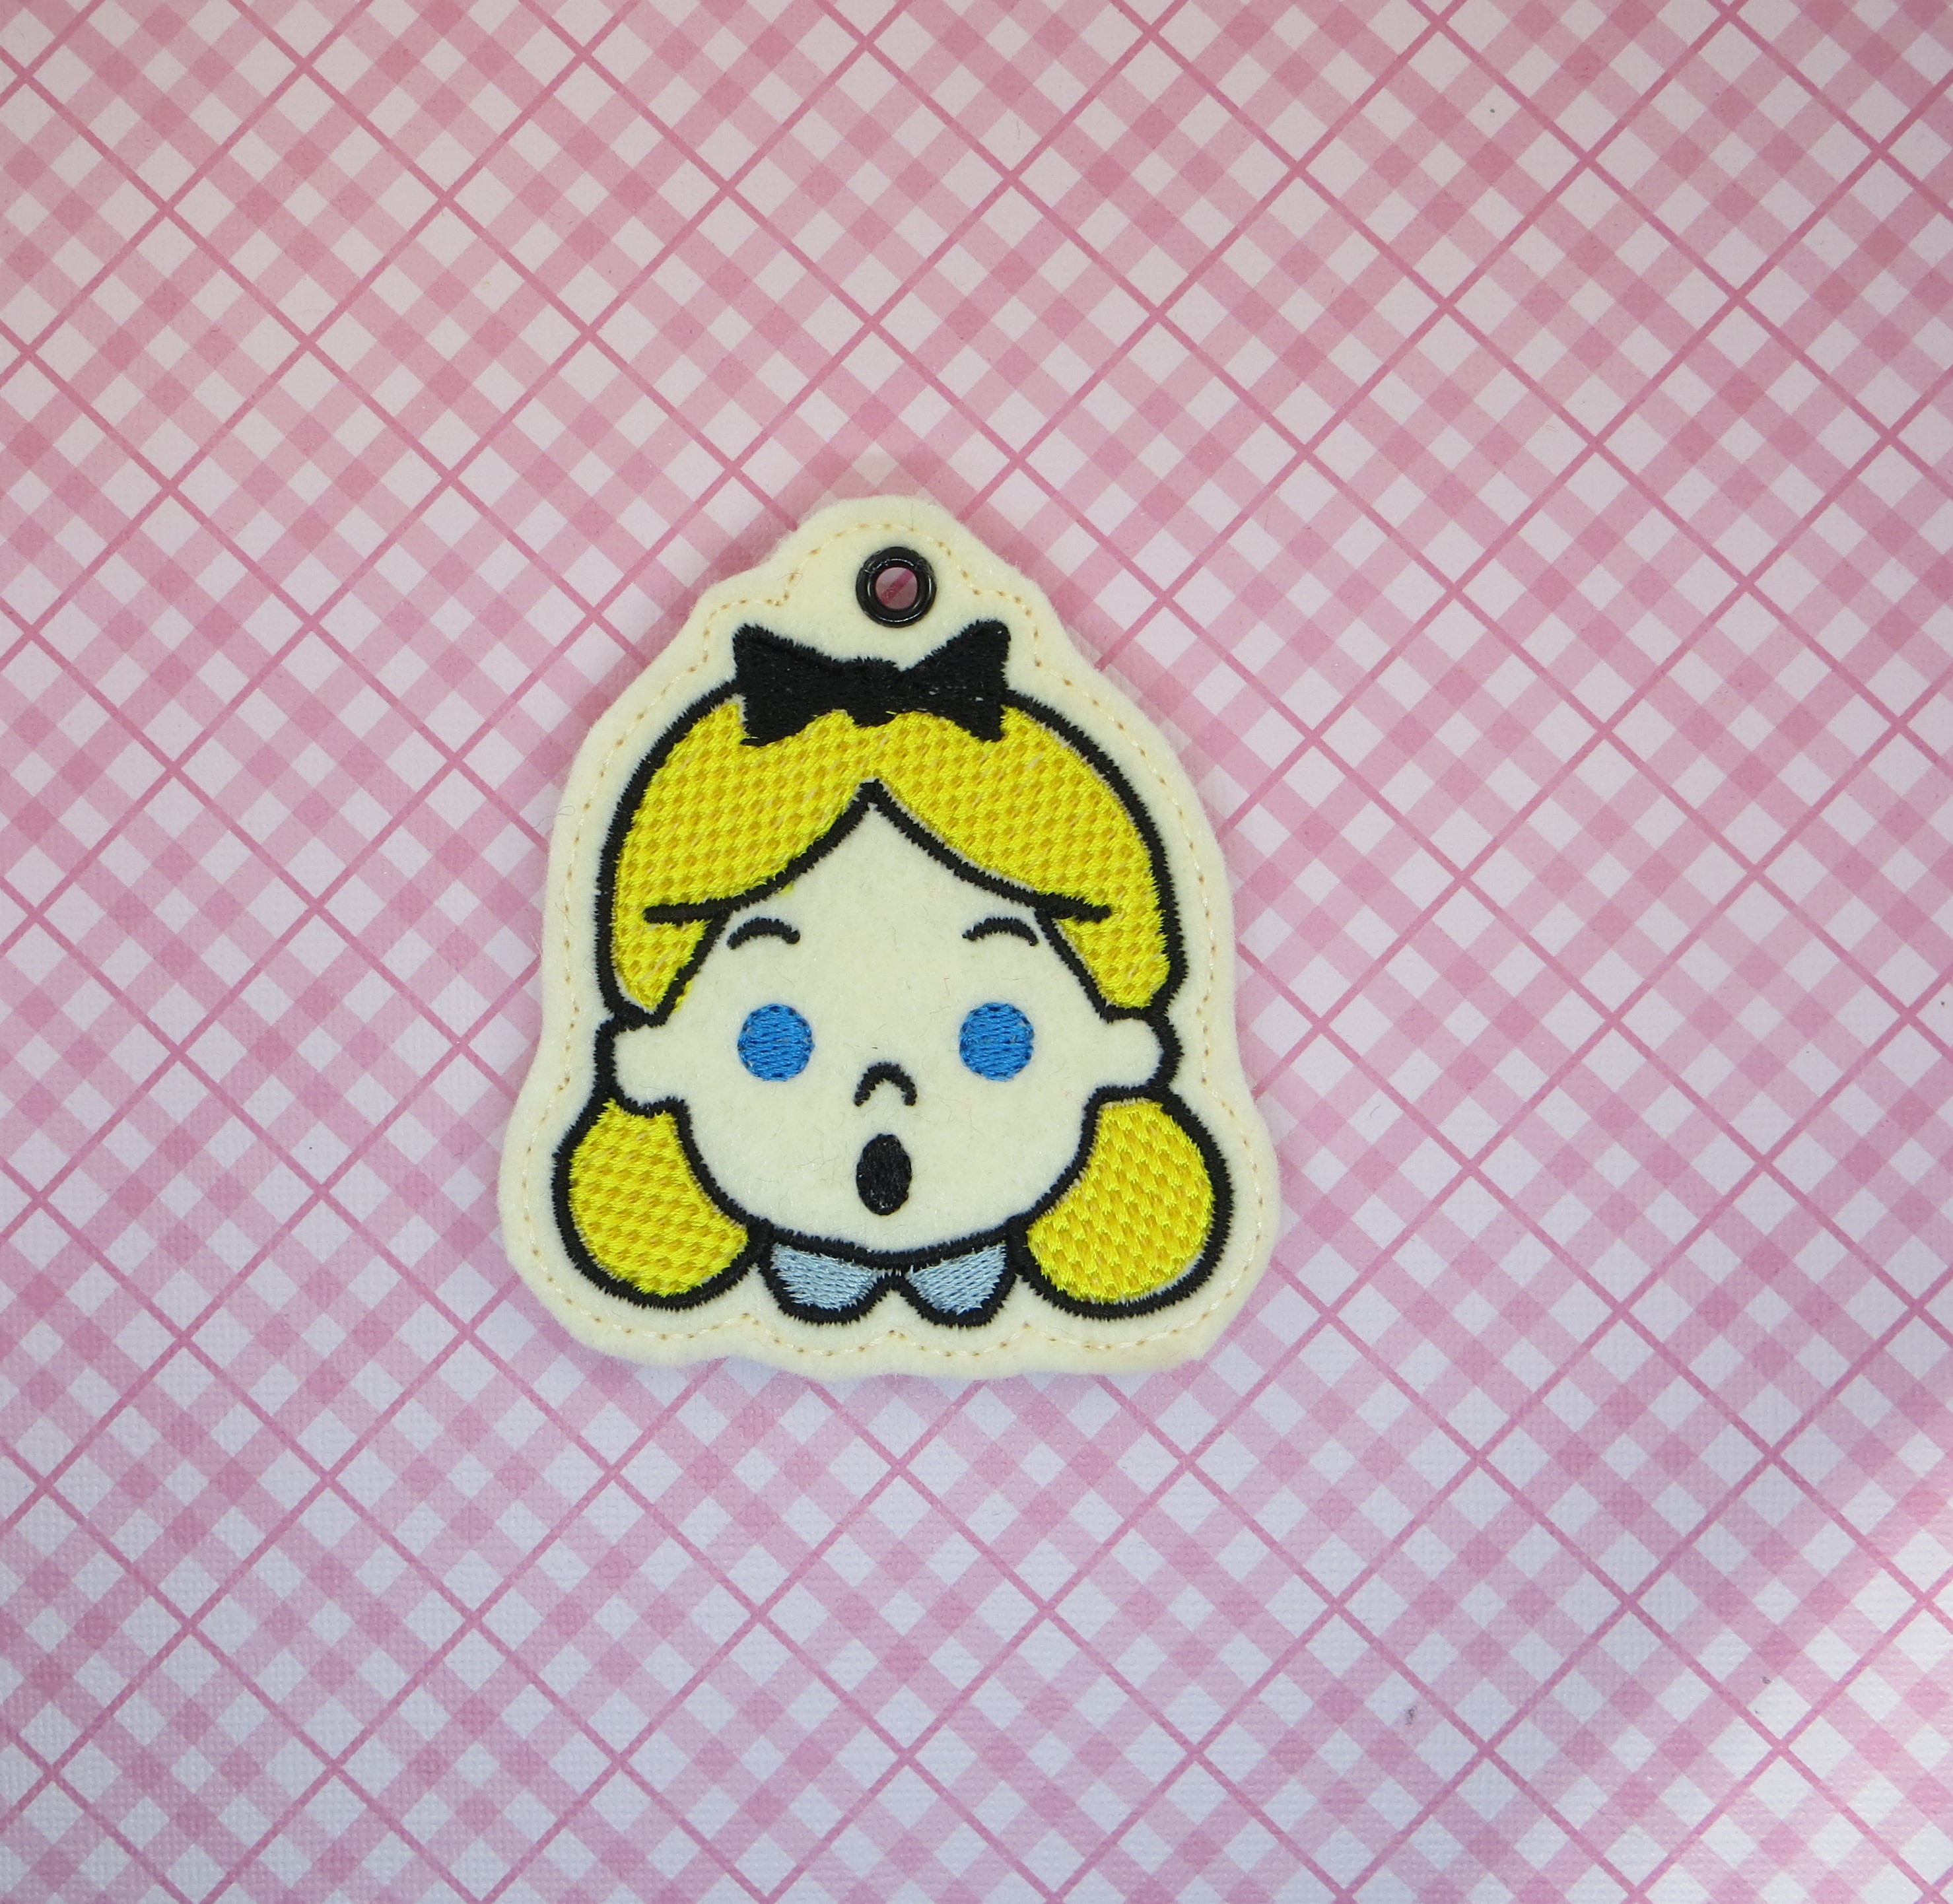 Alice Snaptab Keyfob Embroidery Design